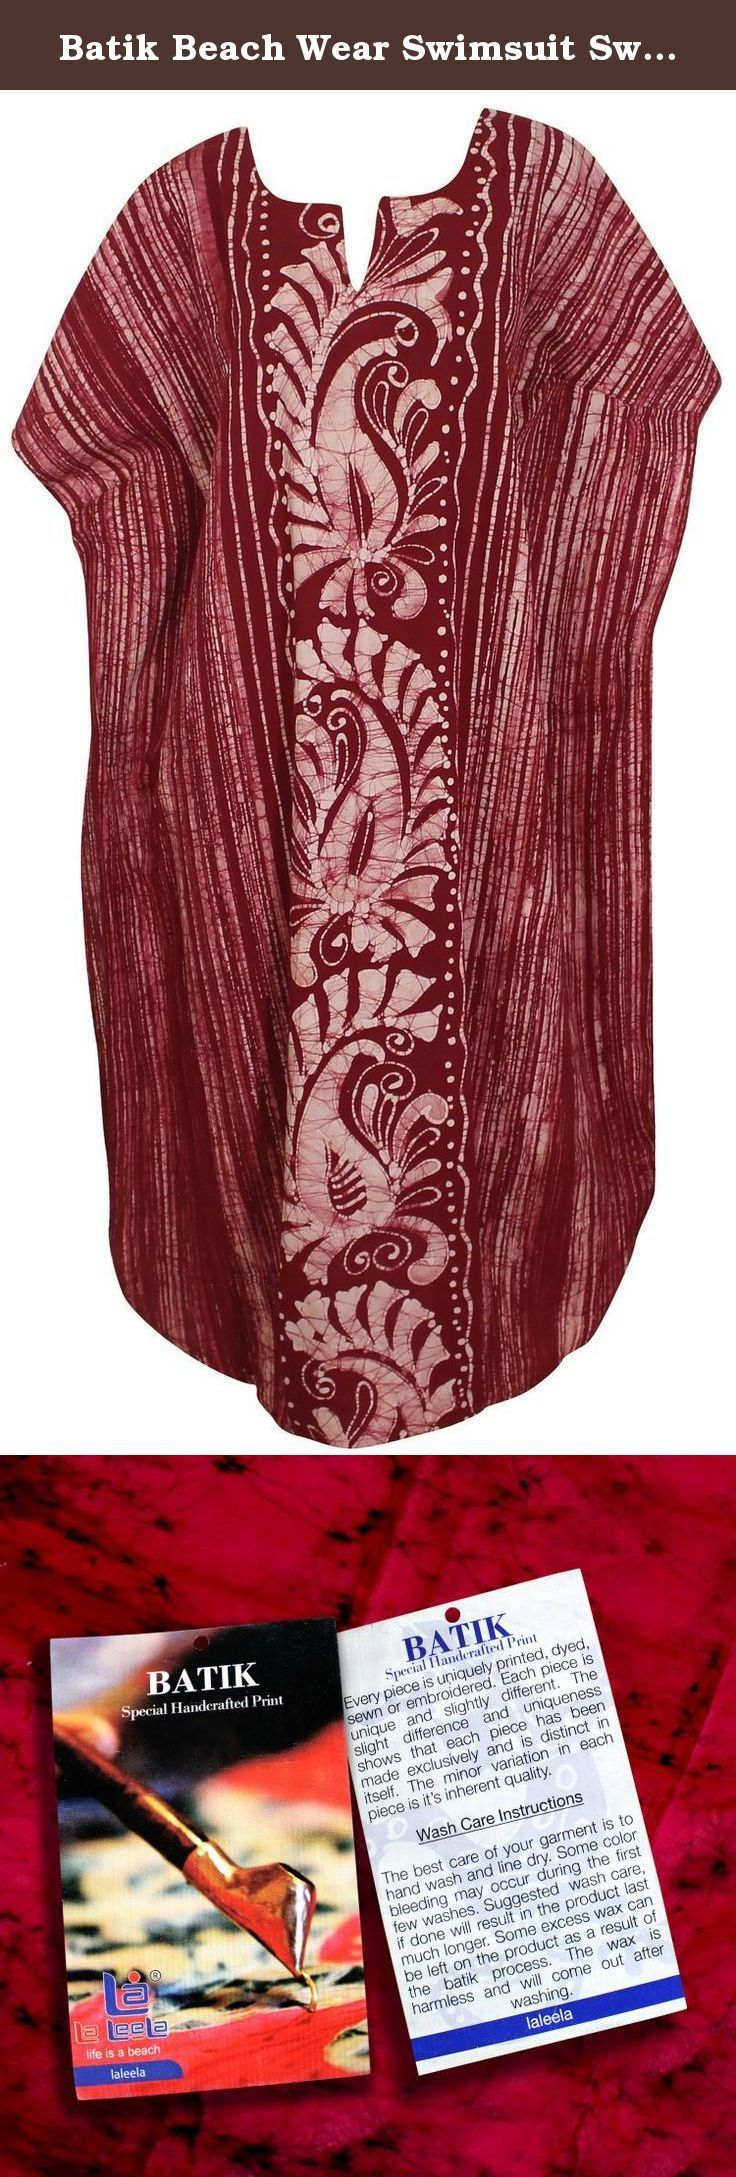 """Batik Beach Wear Swimsuit Swimwear Cotton Nightwear Bikini Cover Up Caftan Dress Valentines Day Gifts 2017. Description:- ==> Welcome to LA LEELA ==> Enjoy Beach, Breeze and Nature with La Leela's """"VIBRANT BEACH COLLECTION"""" and stay calm and classy! . ==> Fabric : 100% COTTON HAND MADE BATIK PRODUCT INDIVIDUALLY MADE AND IS UNIQUE US Size : From Regular 14 (L) TO Plus Size 18W (2X) ➤ UK SIZE : FROM REGULAR 14 (M) TO 22 (XL) ➤ BUST : 46 Inches [ 116 cms ]➤ Length : 66 Inches [ 167 cms ]…"""